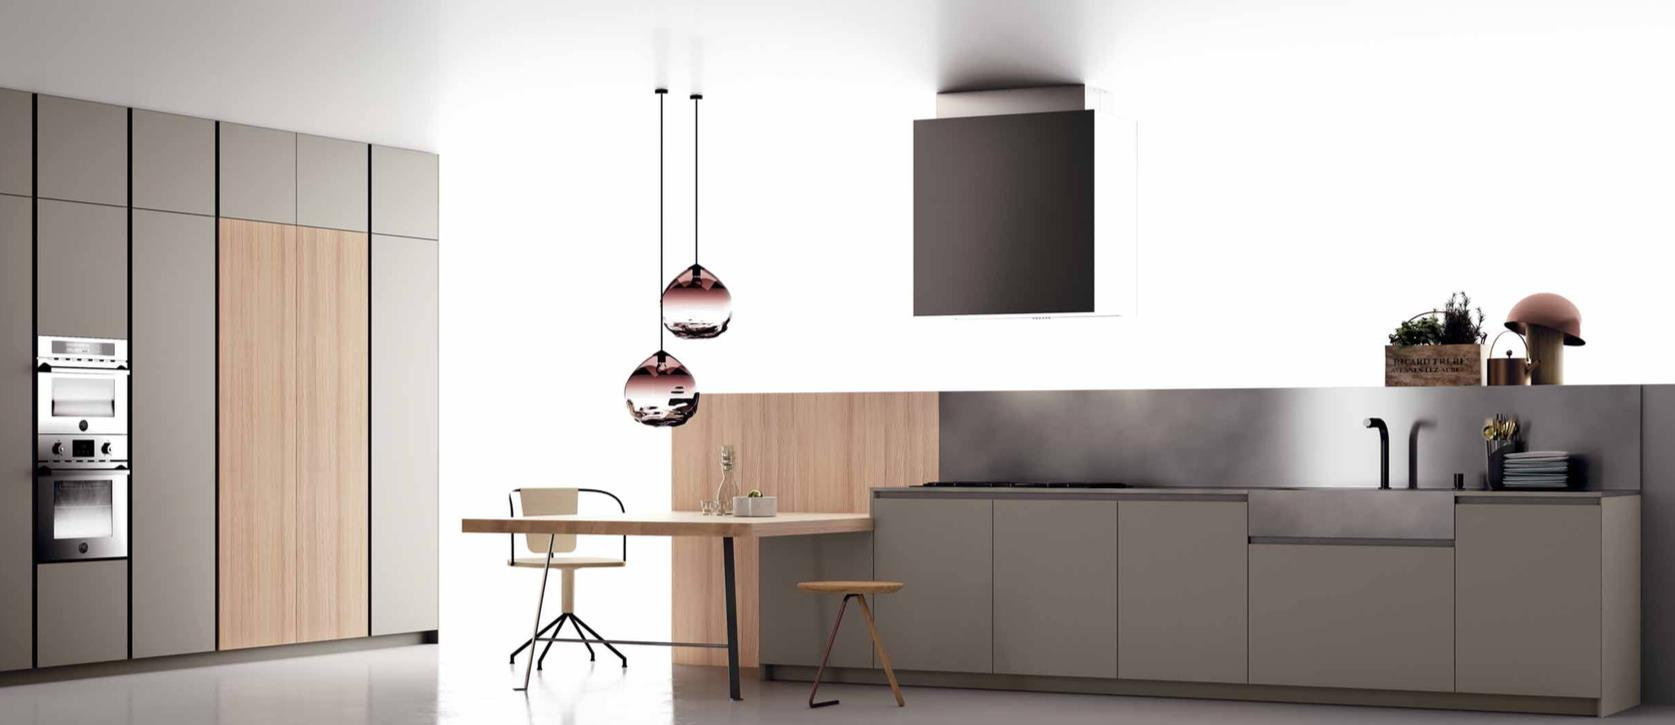 GJ-Kitchens-contemporary-6-20180815235836773